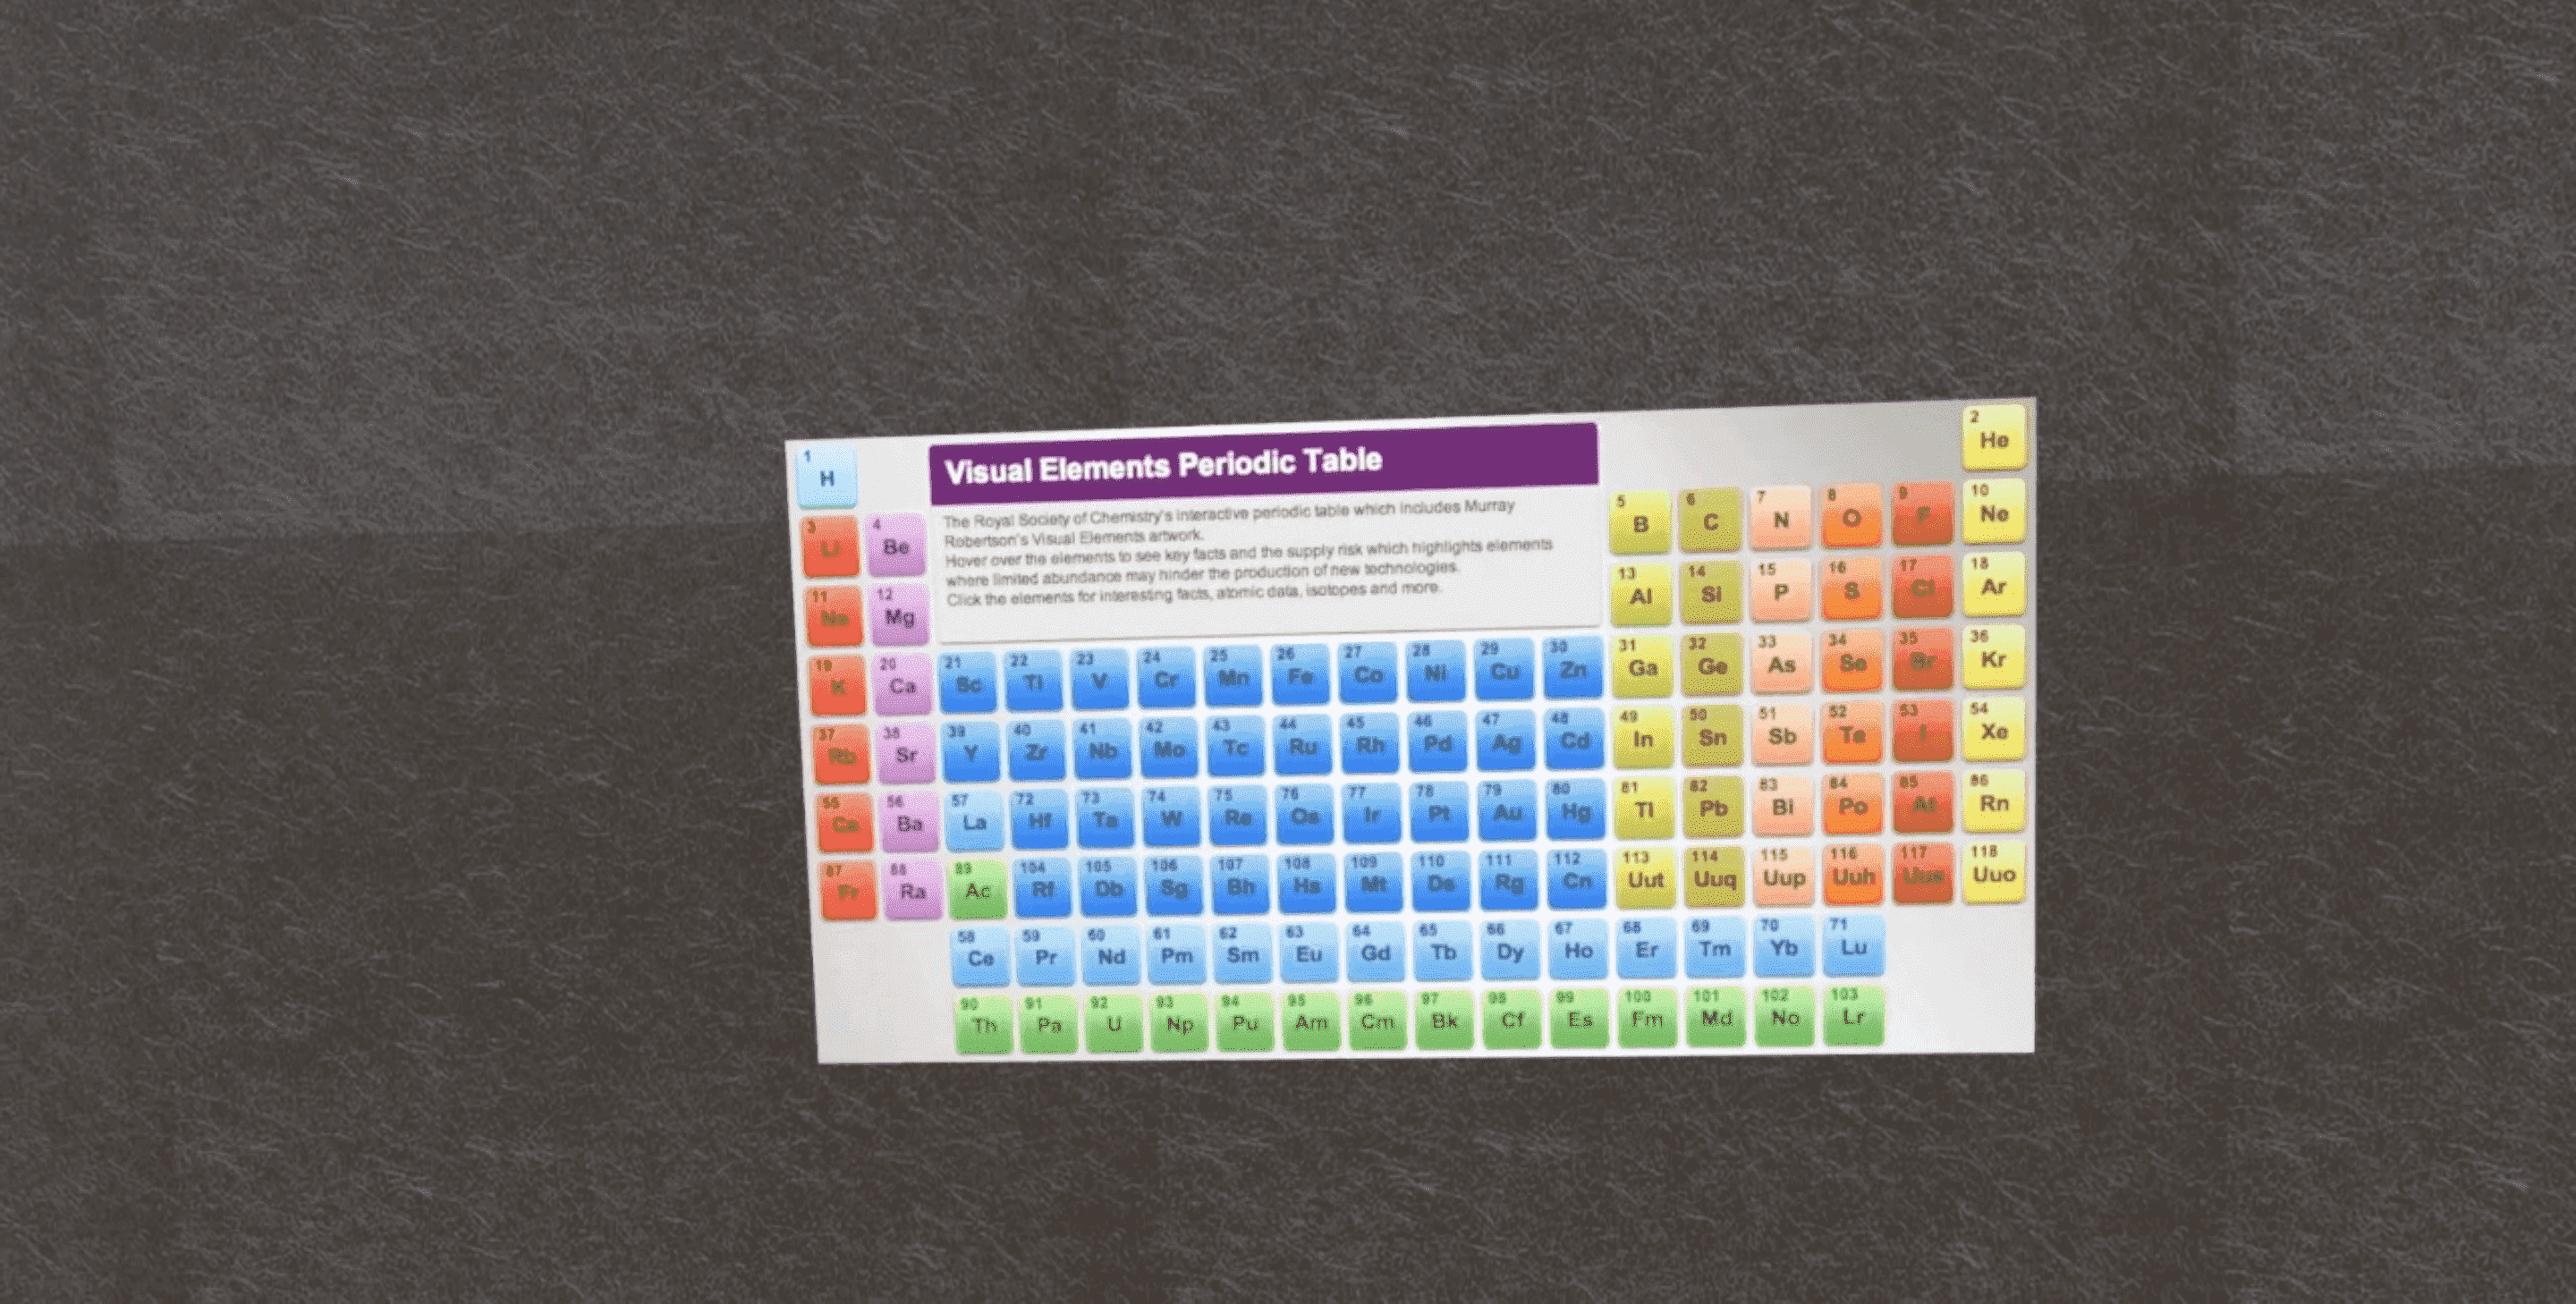 Project Mendeleev's periodic table